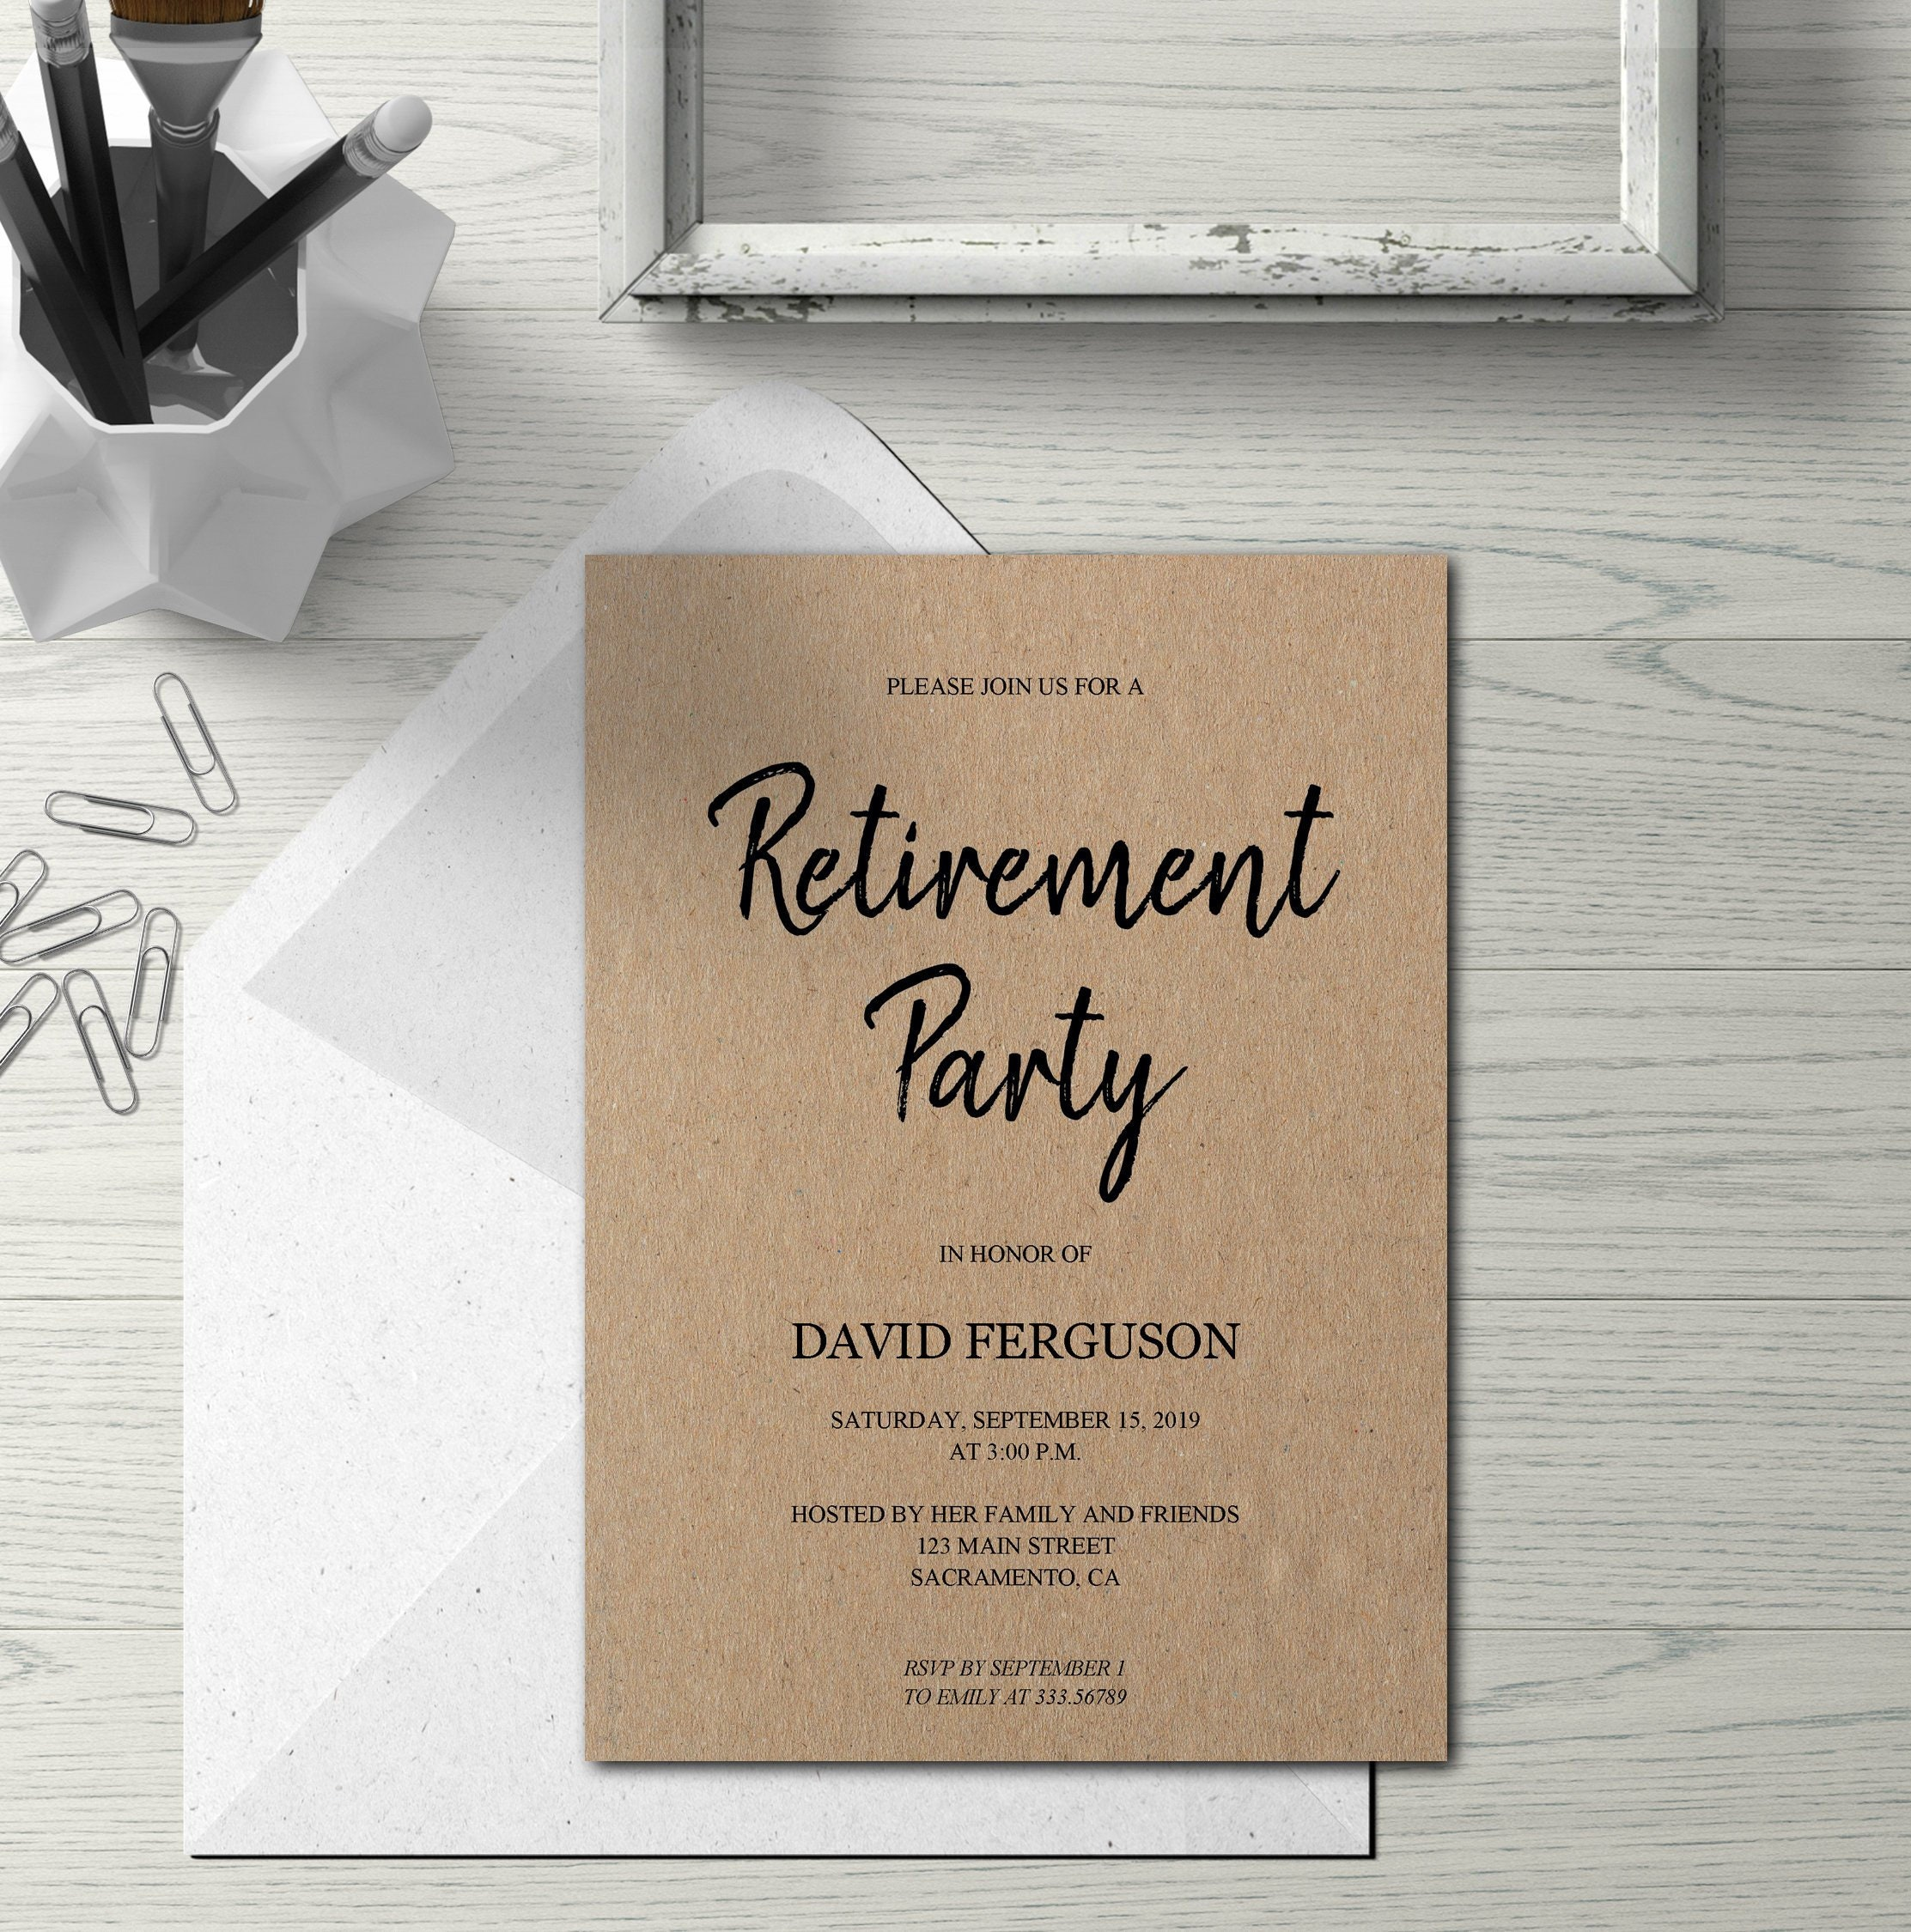 Retirement party invitation simple kraft card, rustic Retirement